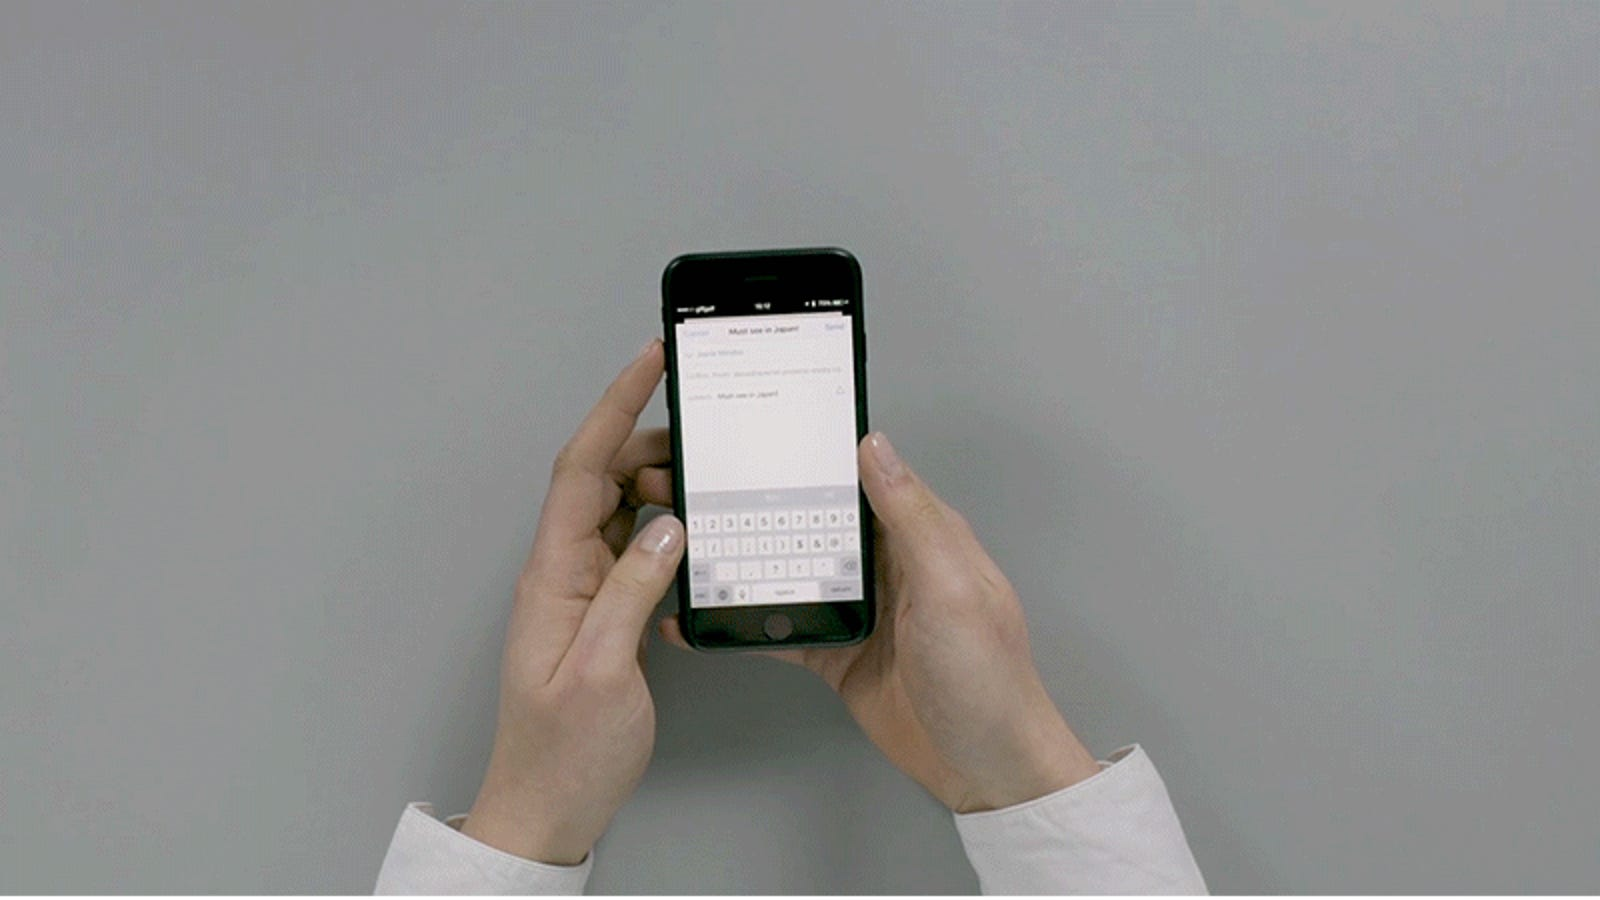 This Solution to Phone Multitasking Is Either Genius or Totally Absurd